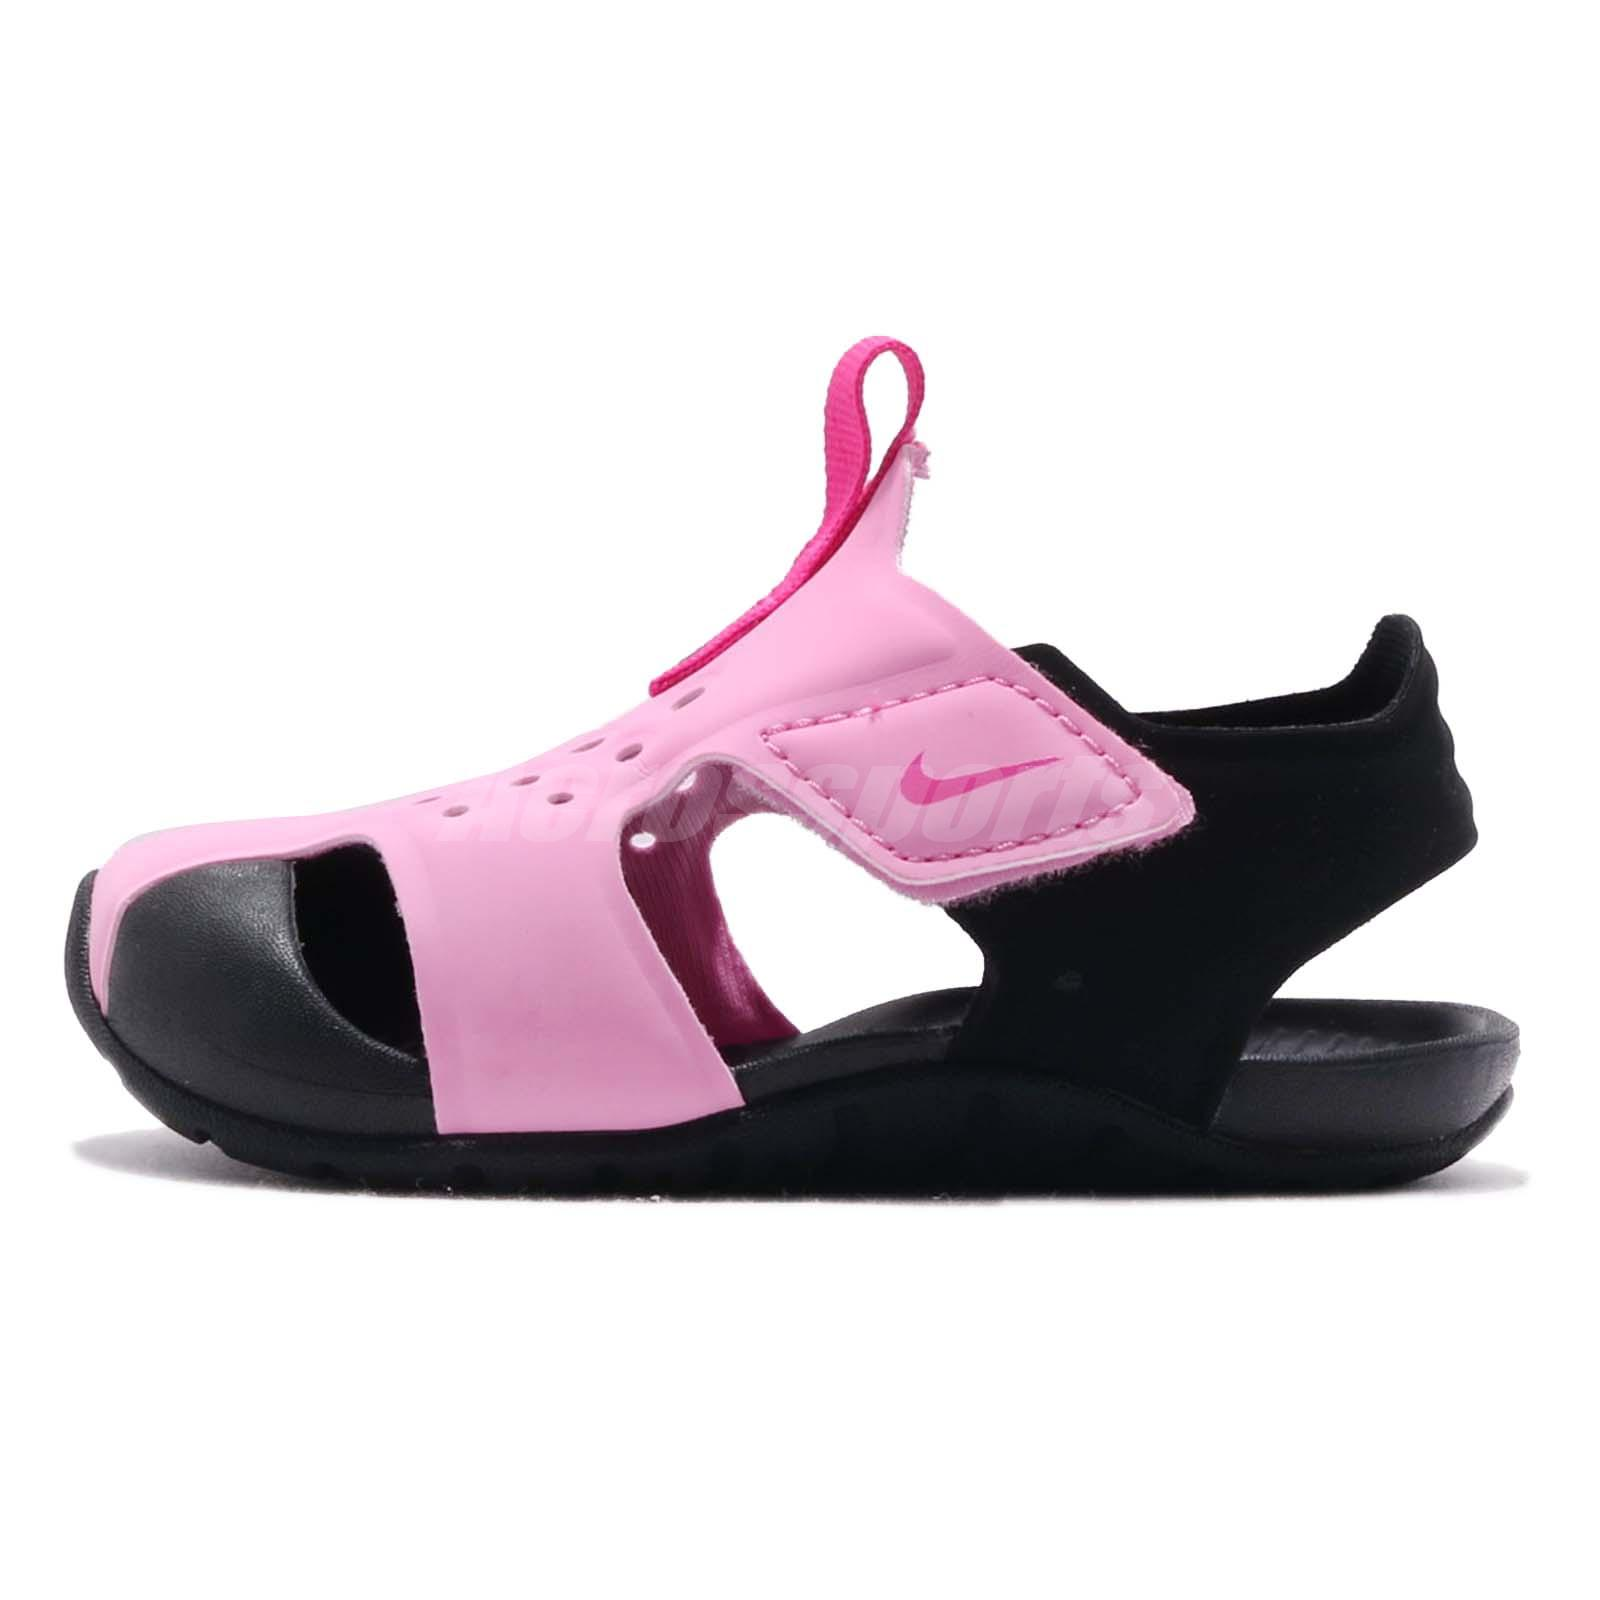 a3df2d9e7277 Nike Sunray Protect 2 TD Psychic Pink Toddler Infant Sandals Shoes  943827-602